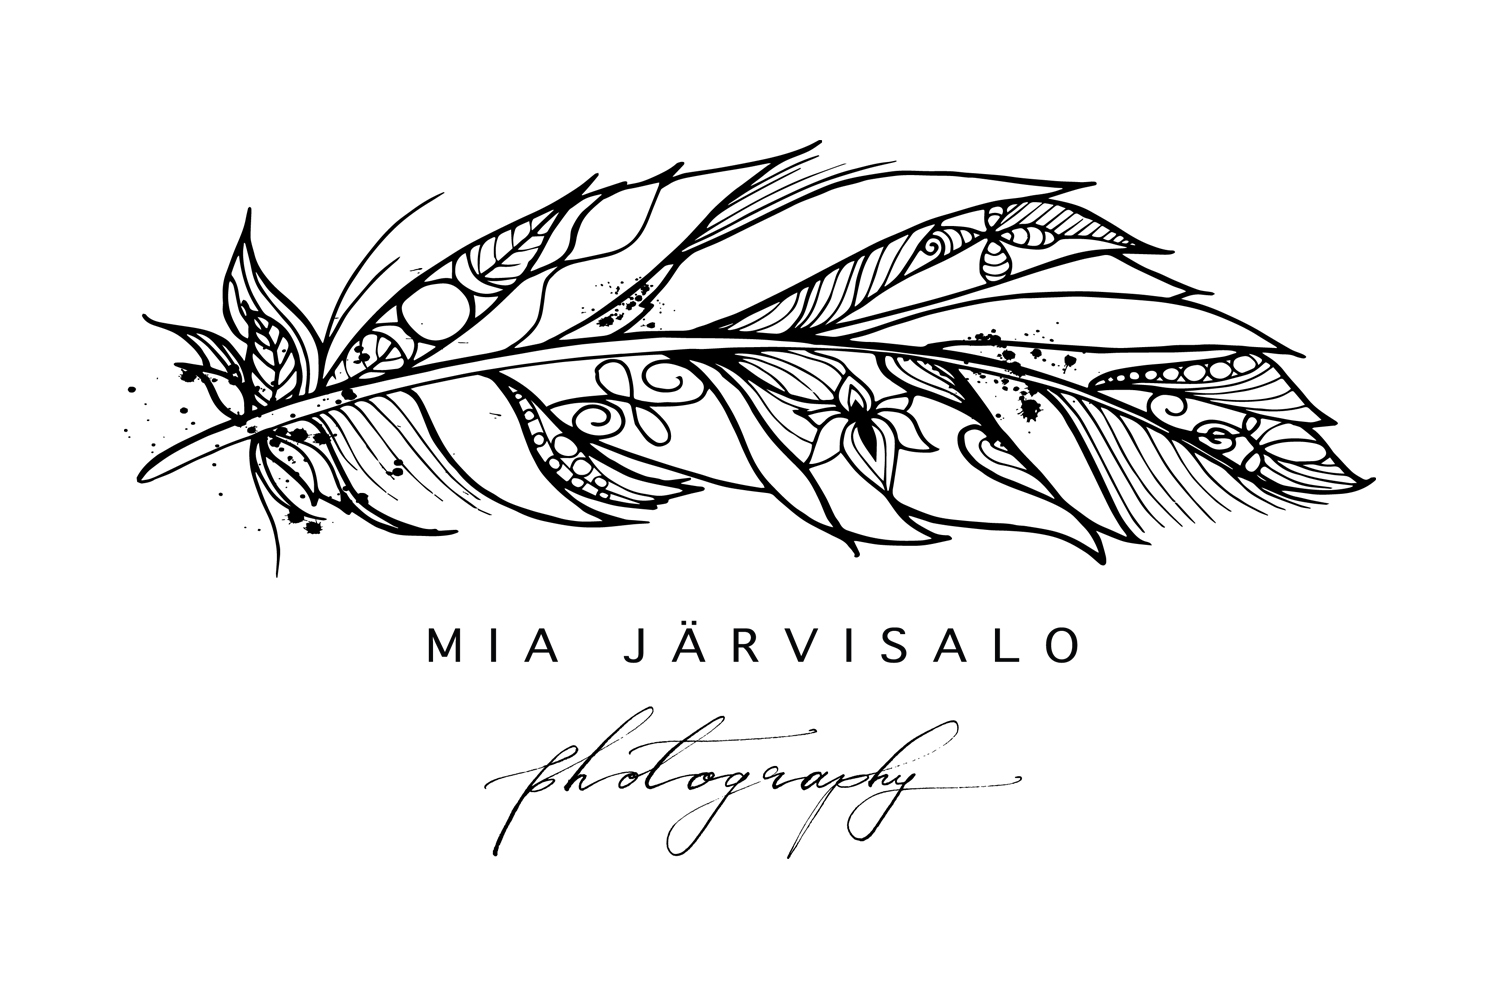 Willow visuals_Mia Jarvisalo logo1